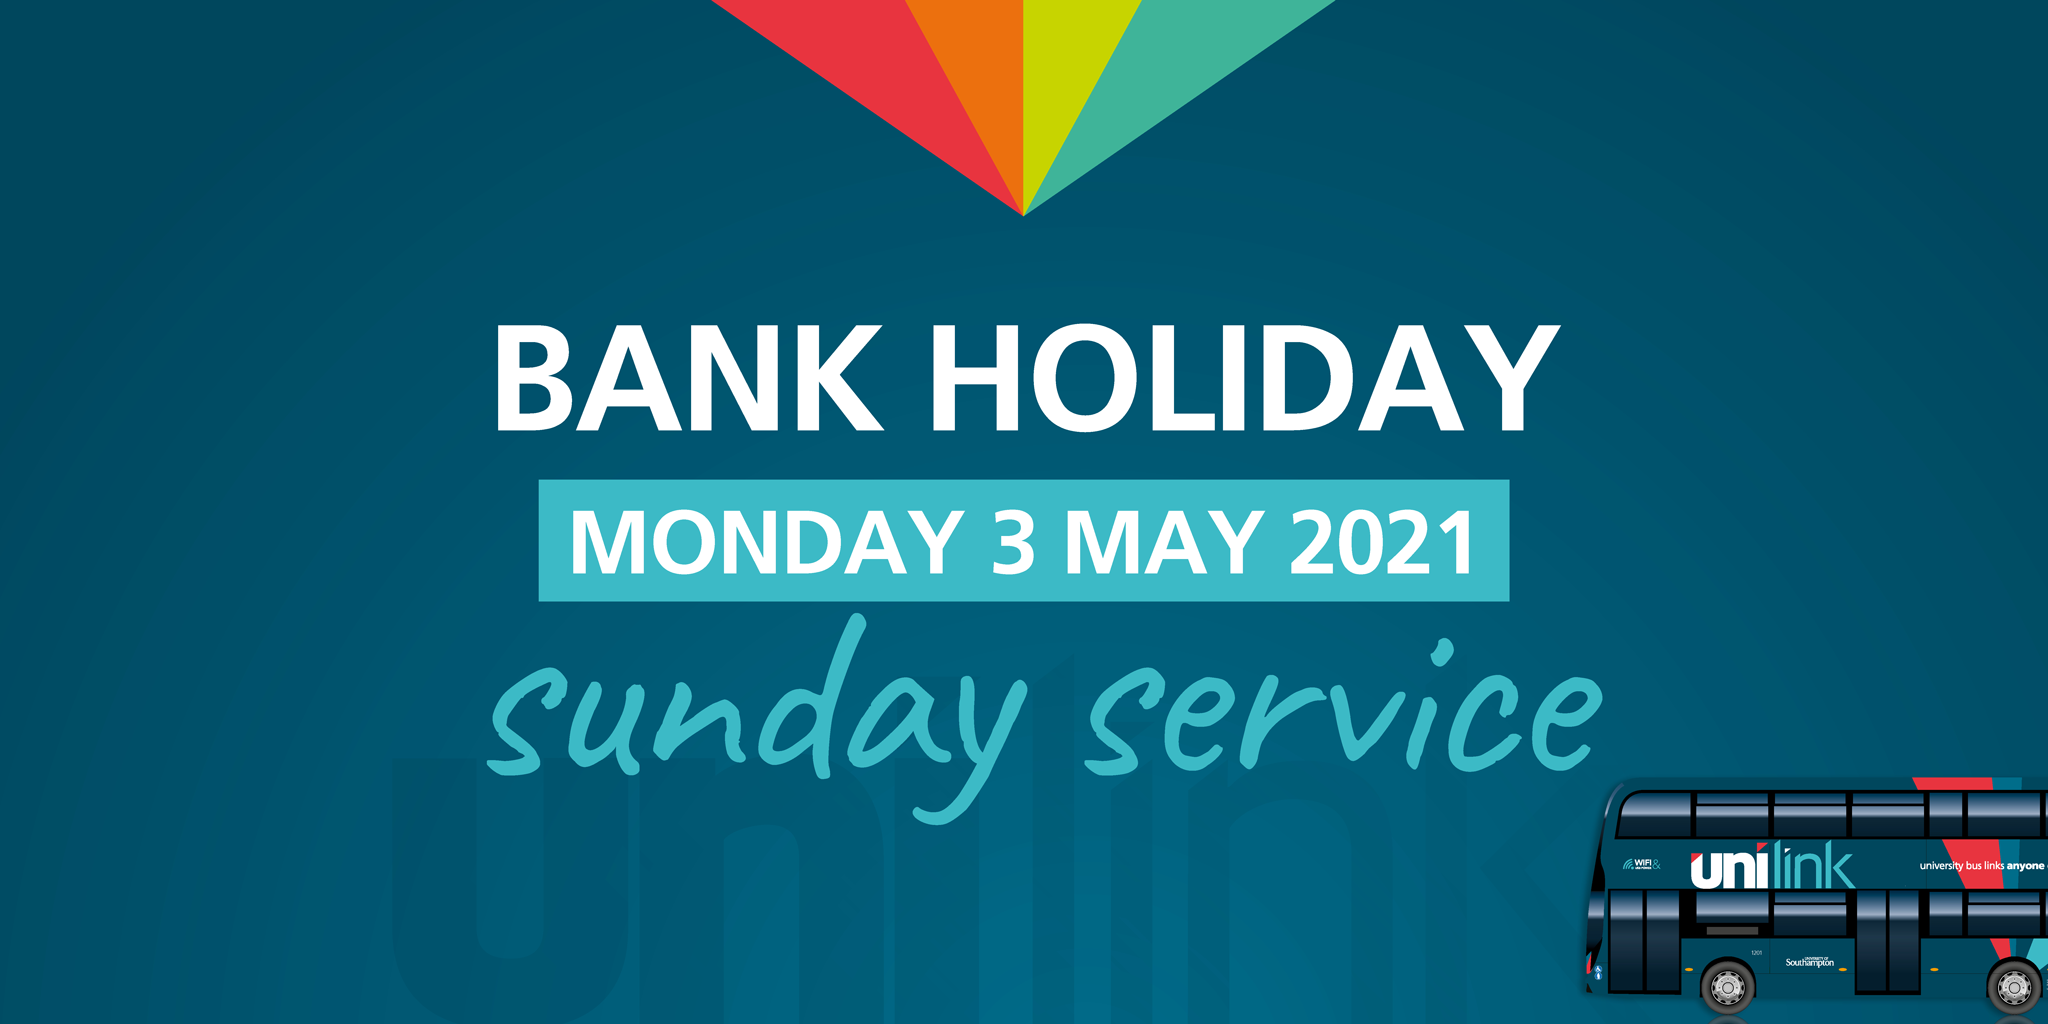 Image of a Unilink bus with text reading 'bank holiday. Monday 3rd May. Sunday service'